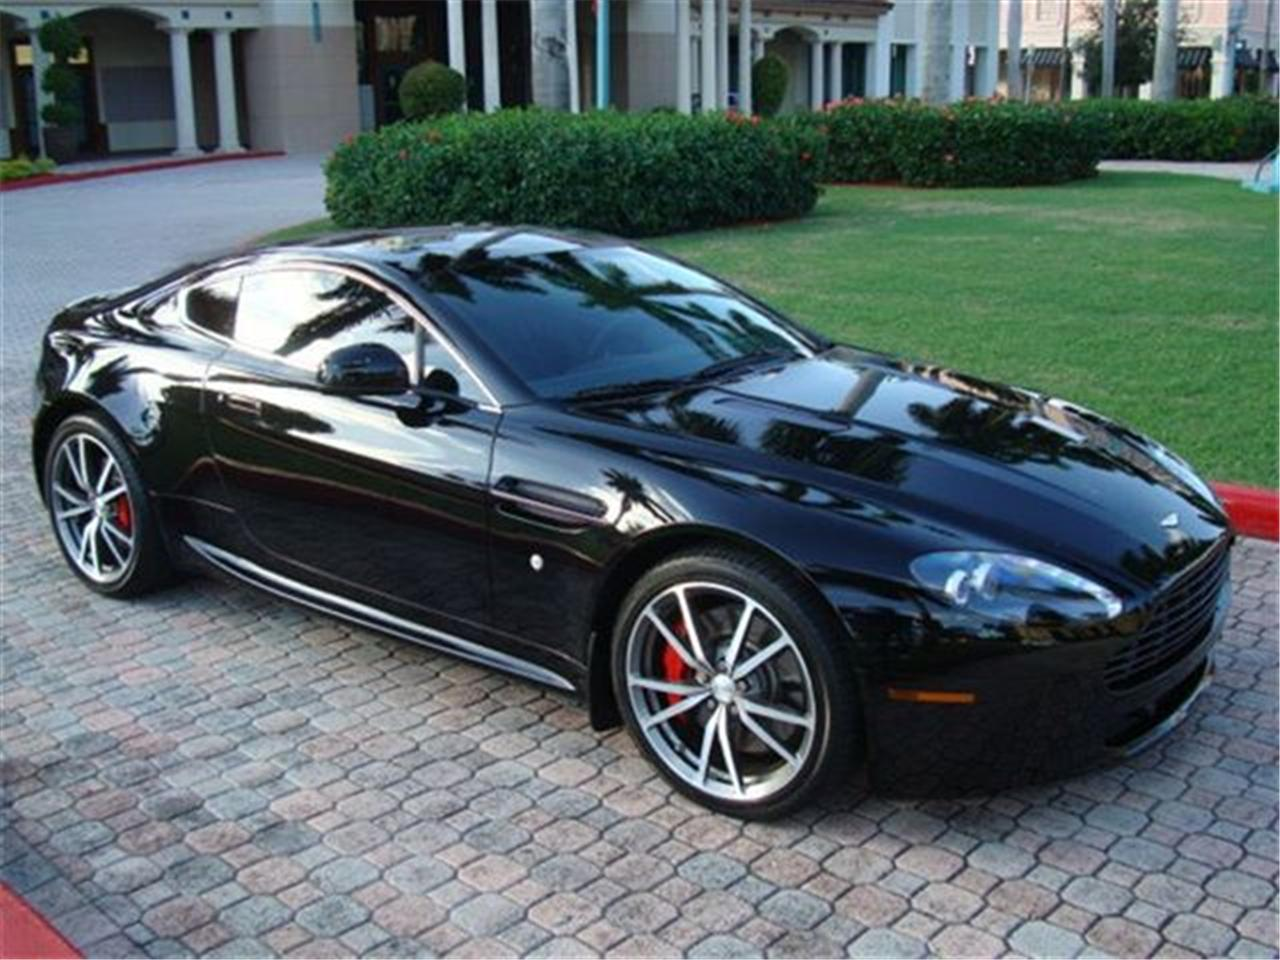 2010 aston martin v8 vantage. Black Bedroom Furniture Sets. Home Design Ideas